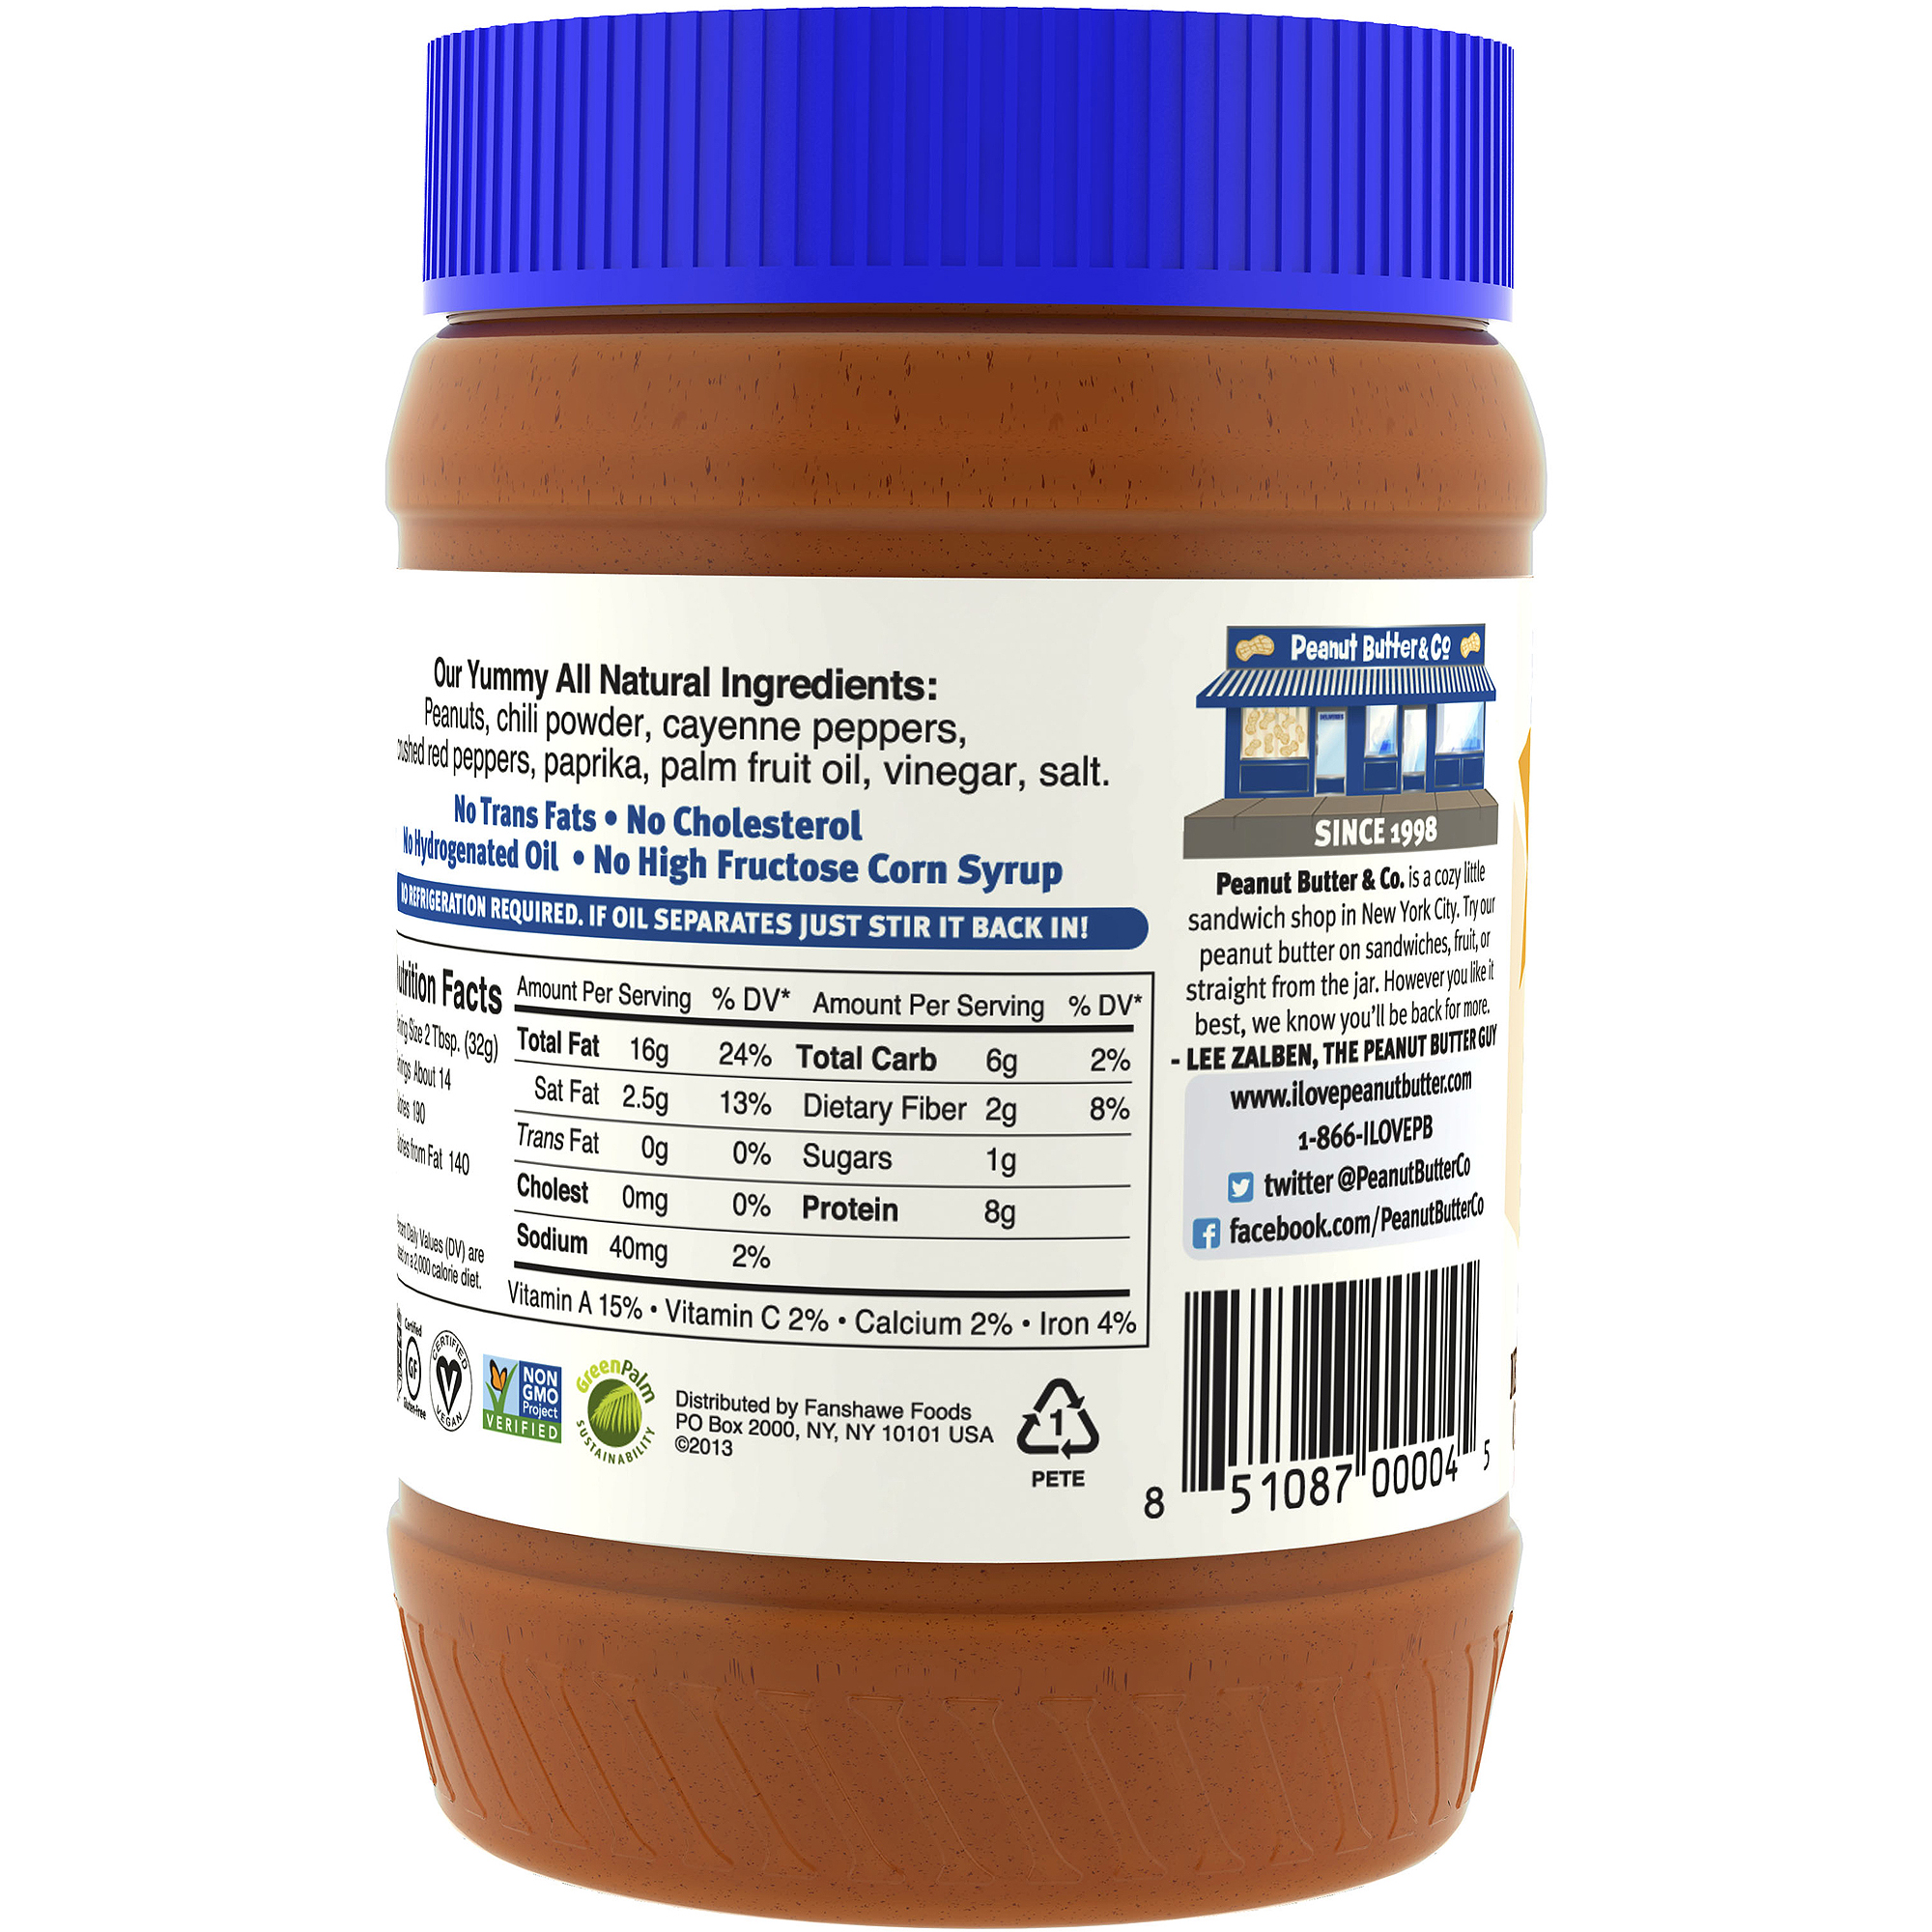 Peanut Butter & Co. The Heat Is On Peanut Butter, 16 oz  (Pack of 6)